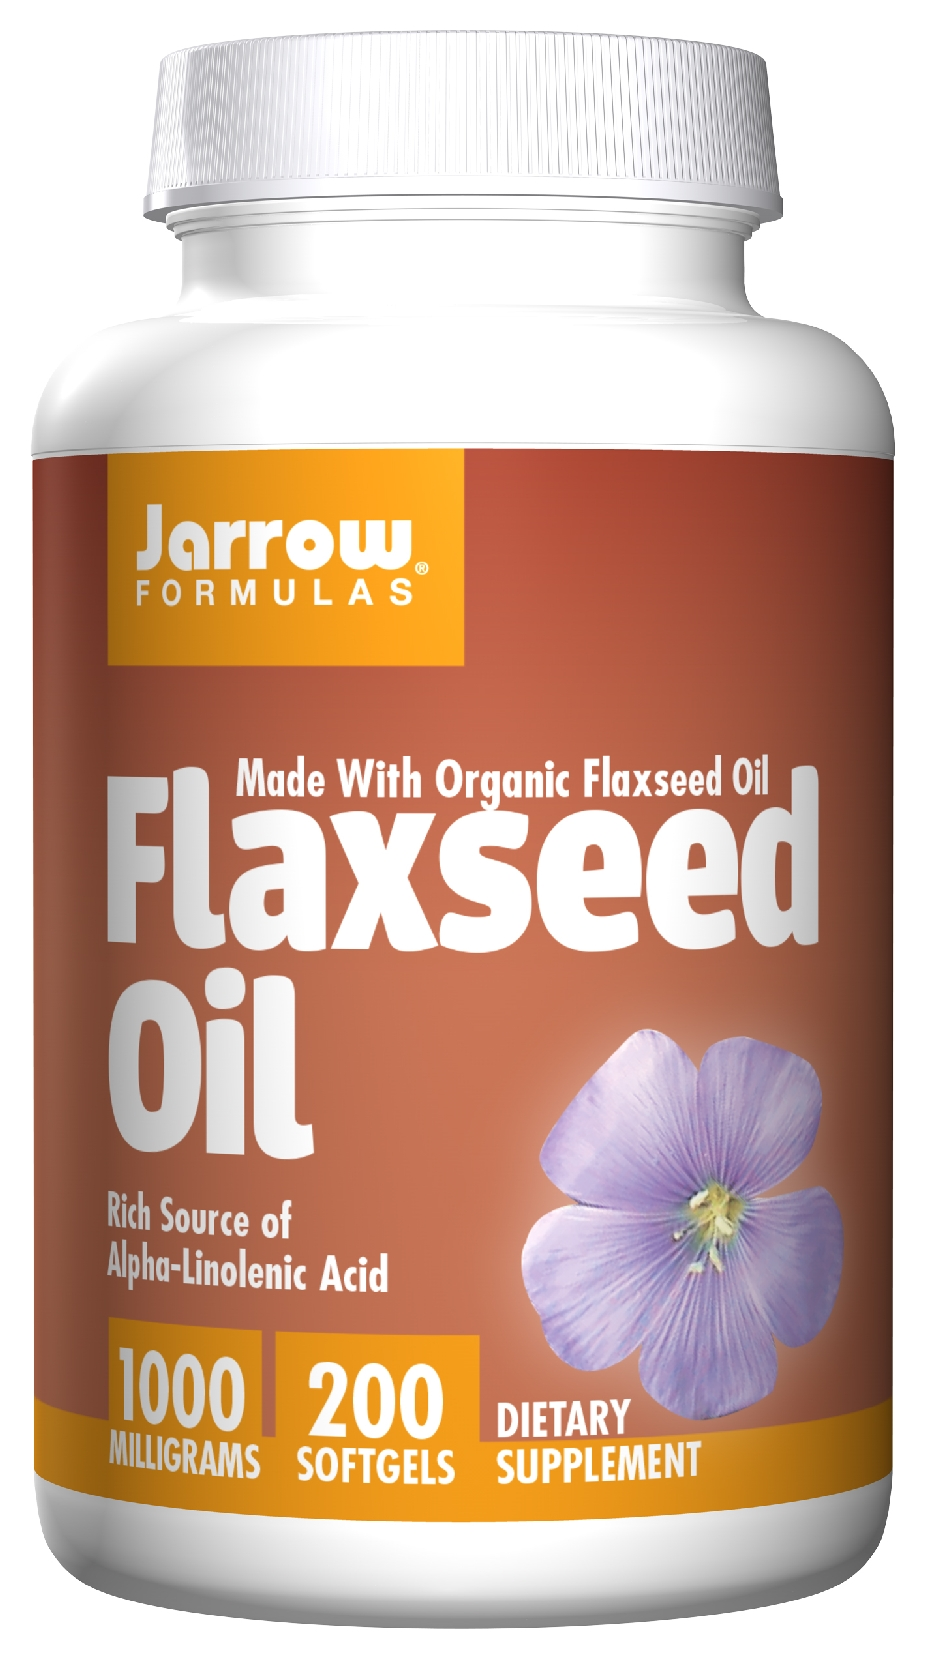 Flaxseed Oil 1000 mg 200 sgels by Jarrow Formulas